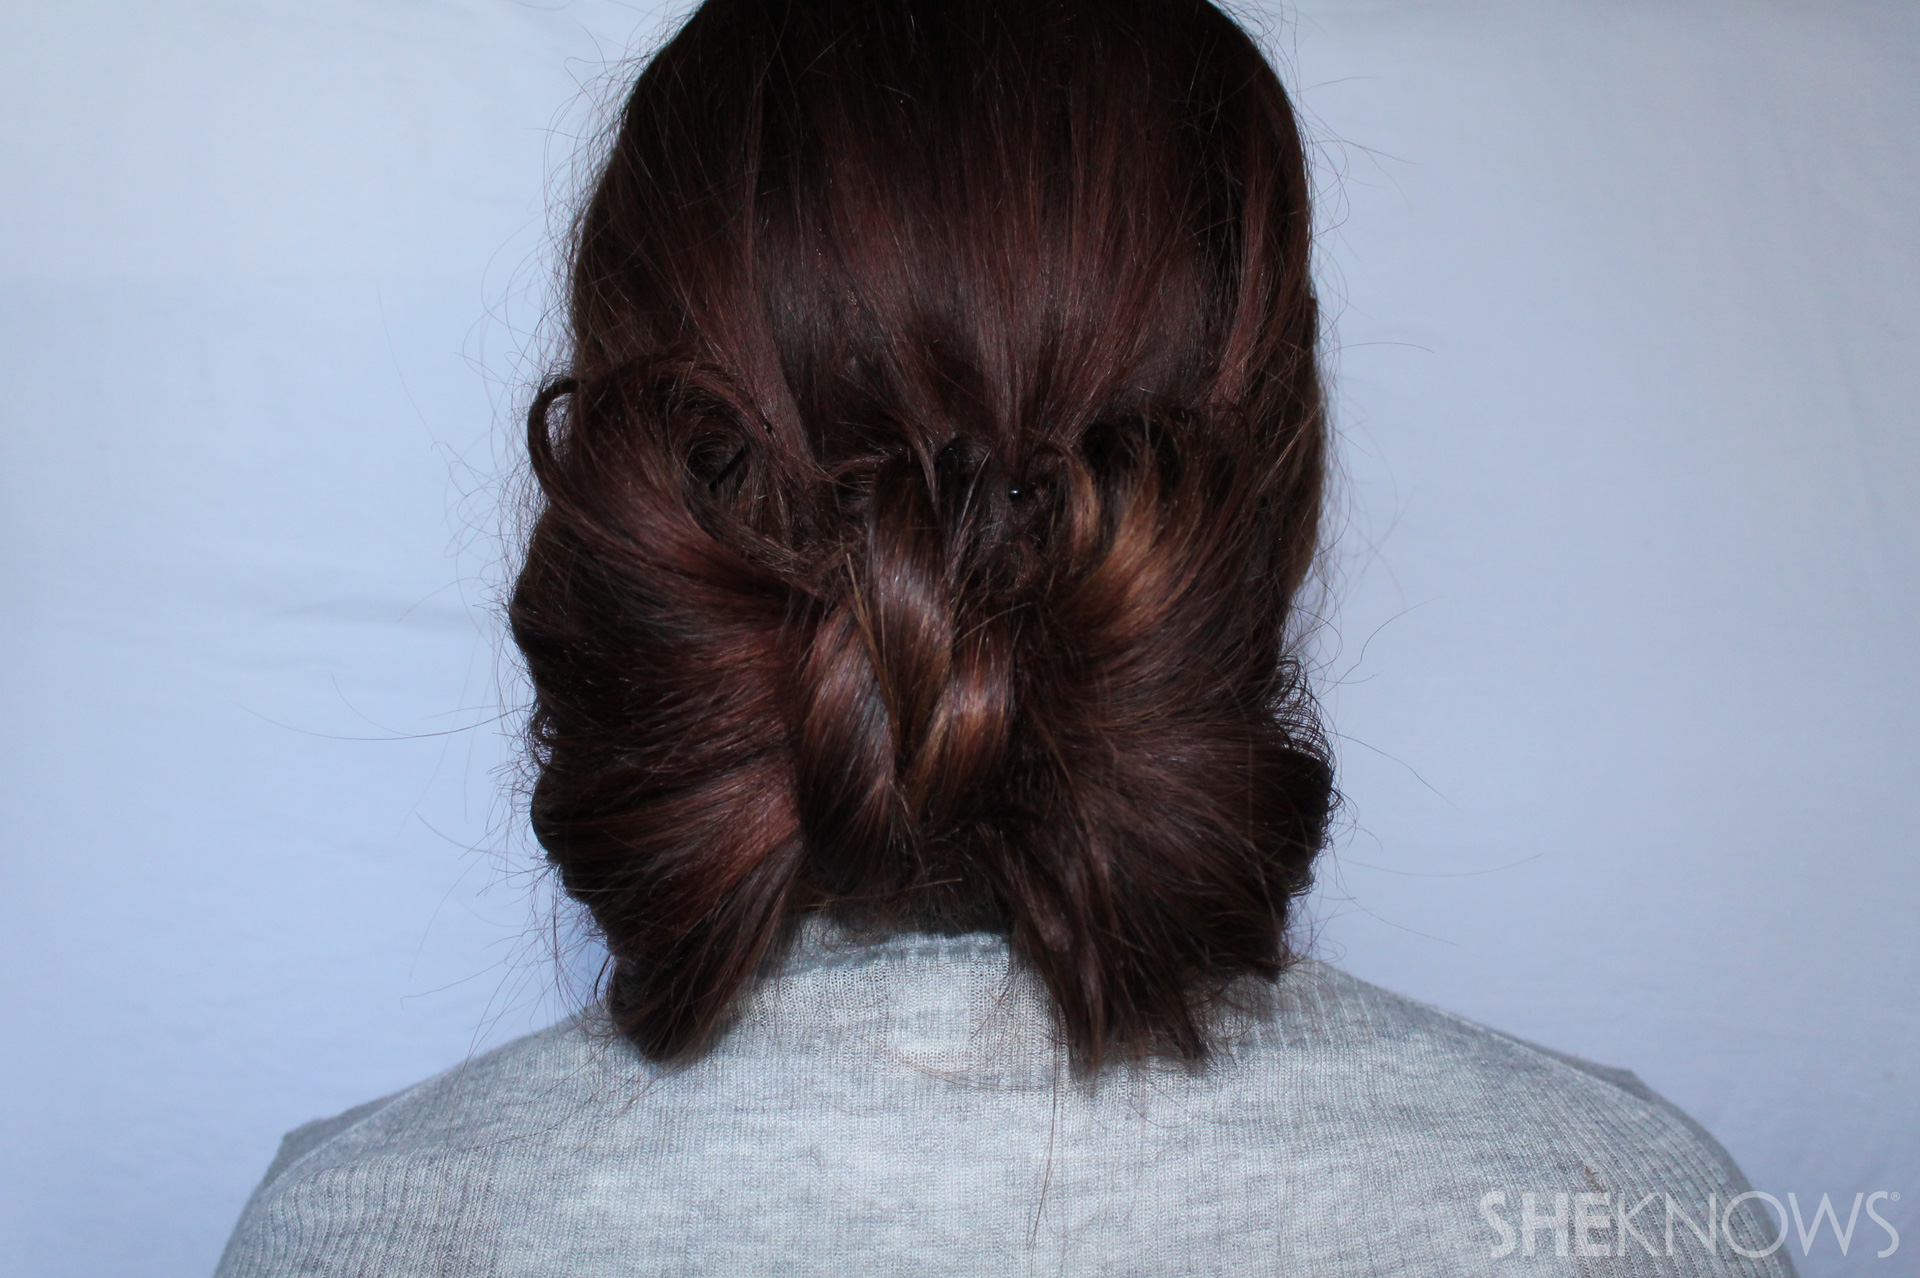 Hair bow | Sheknows.com - finished